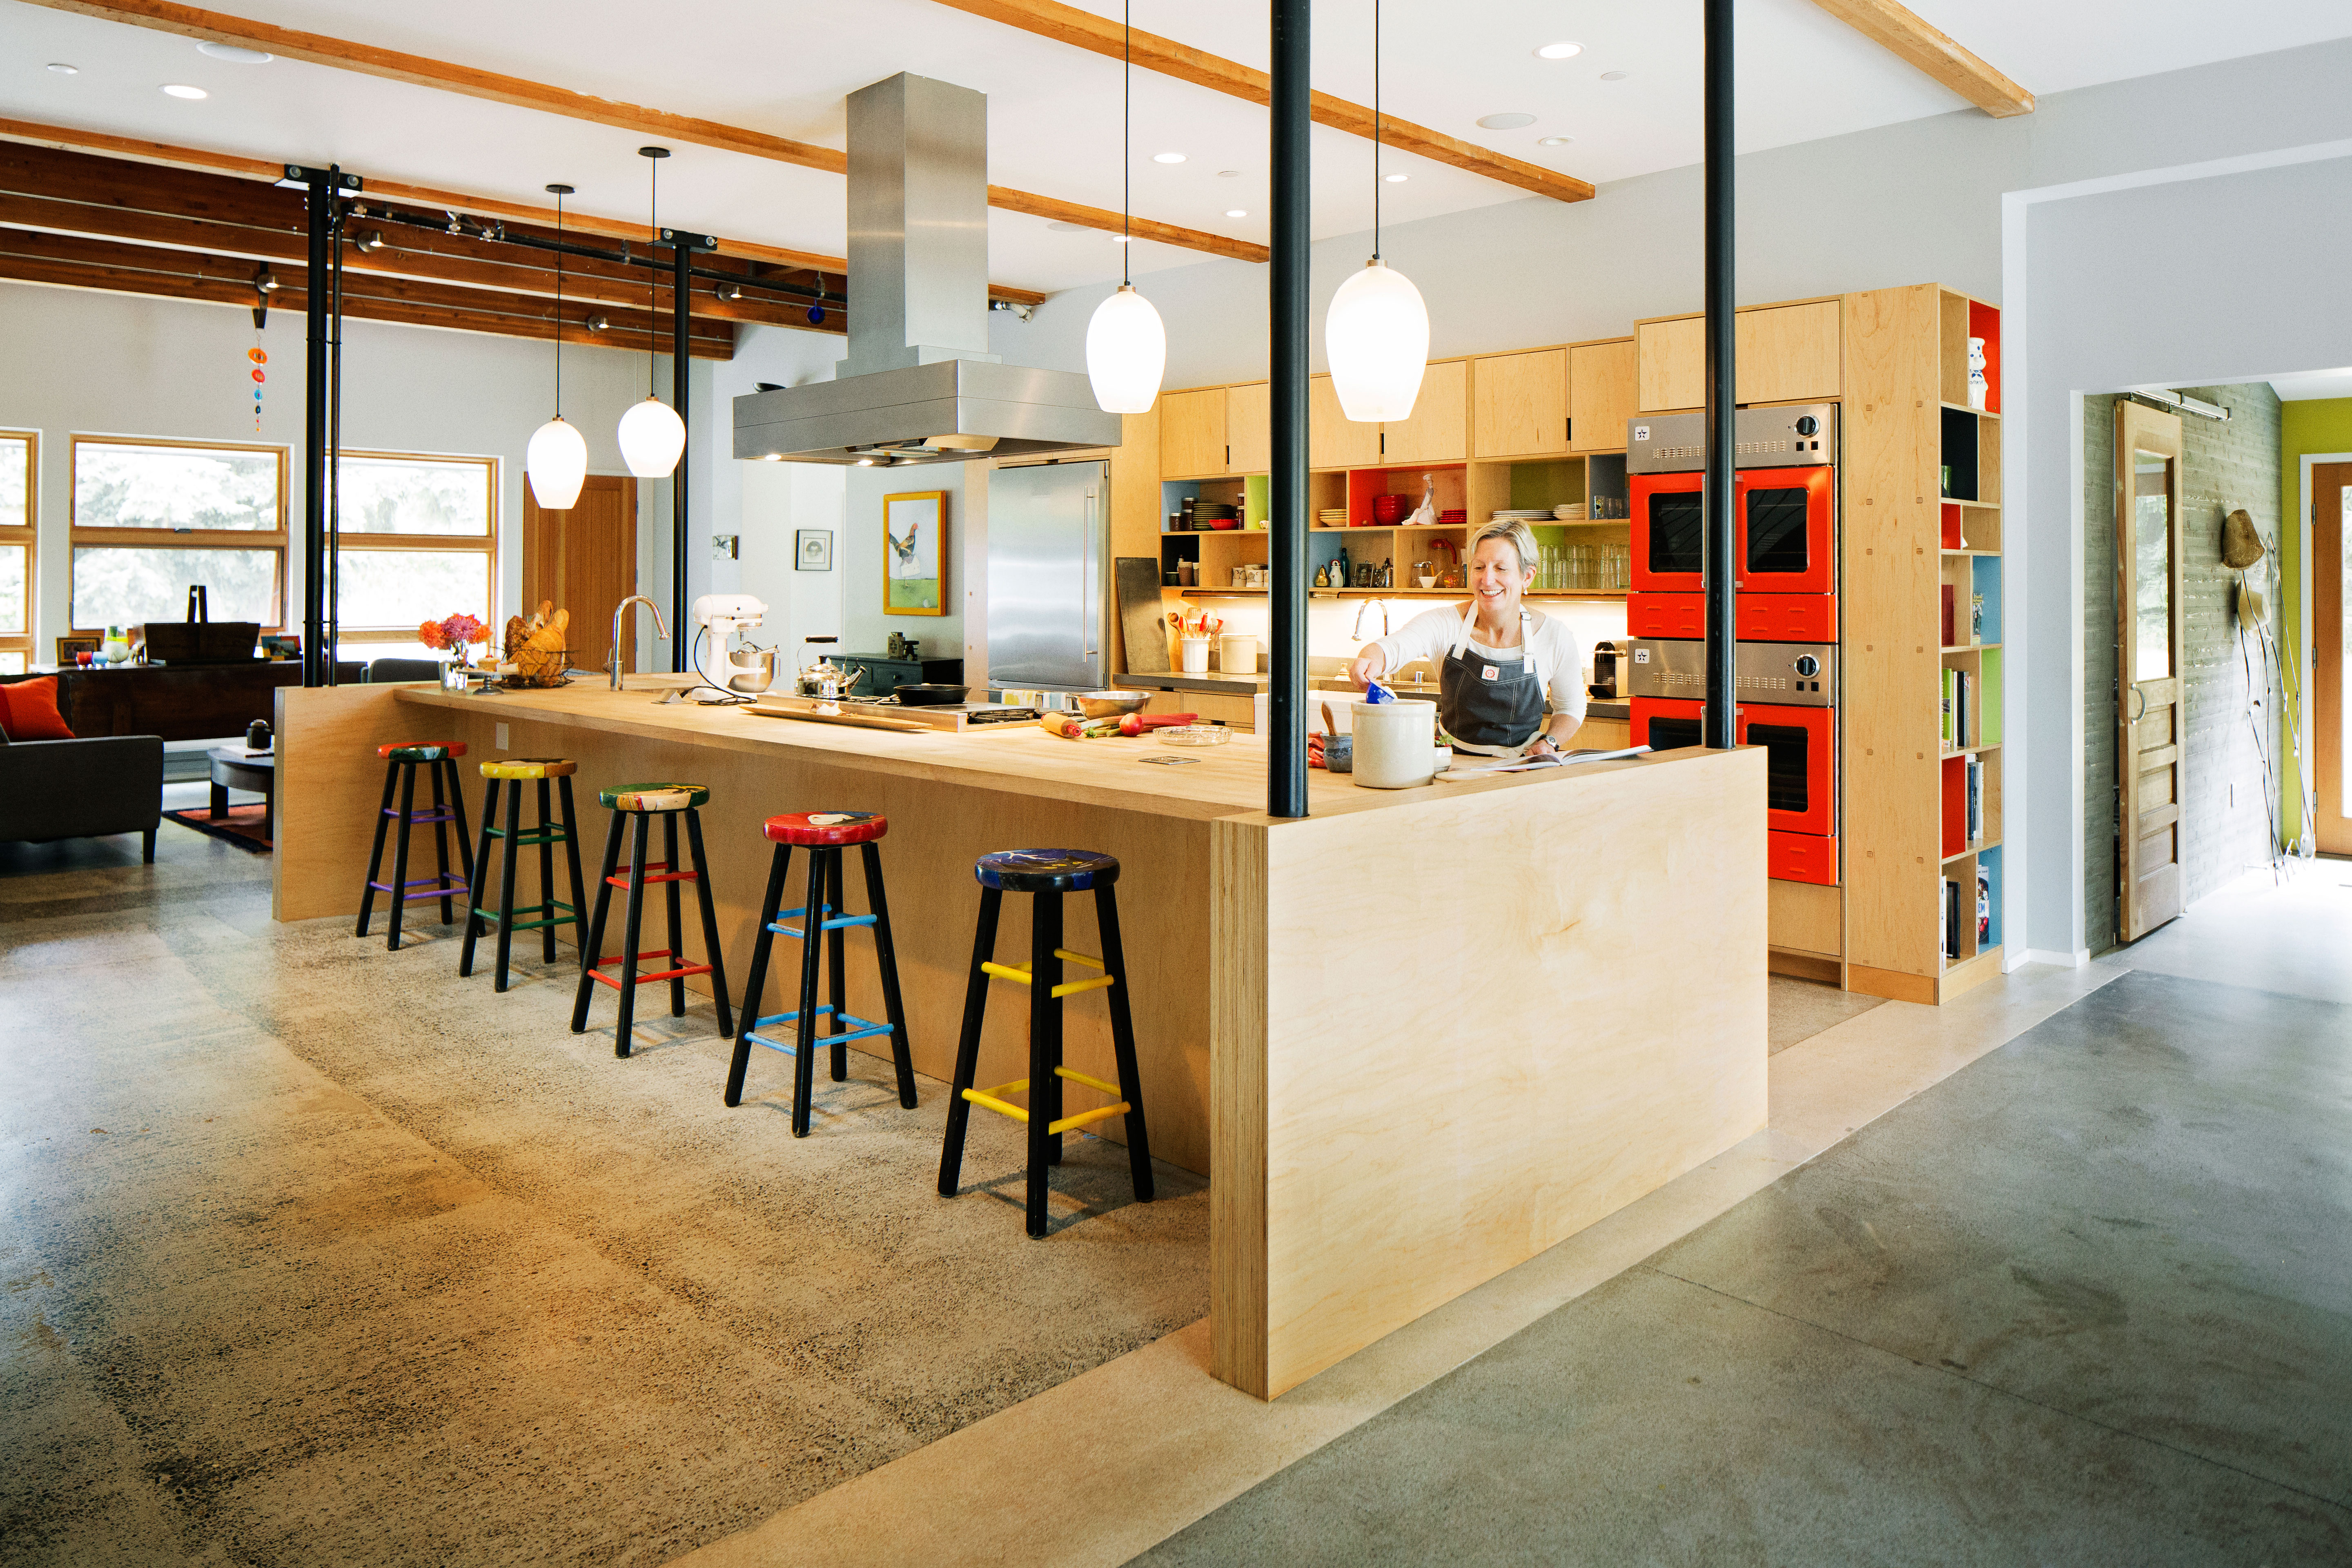 9 Ideas to Steal from a Chef\'s Kitchen - Sunset Magazine